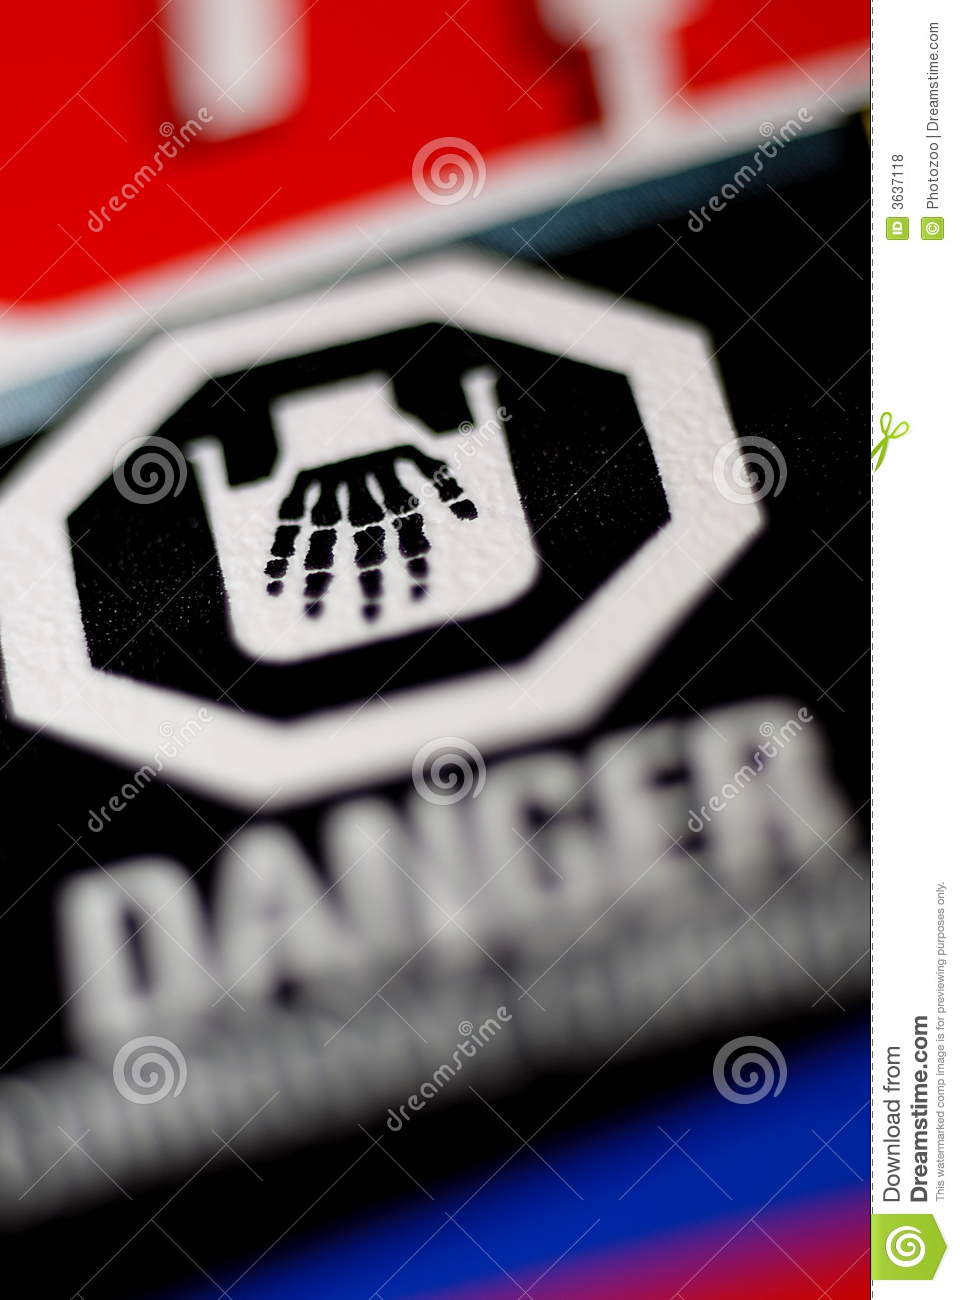 Danger Corrosive Label Skeletal Hand Stock Photo Image Of Danger